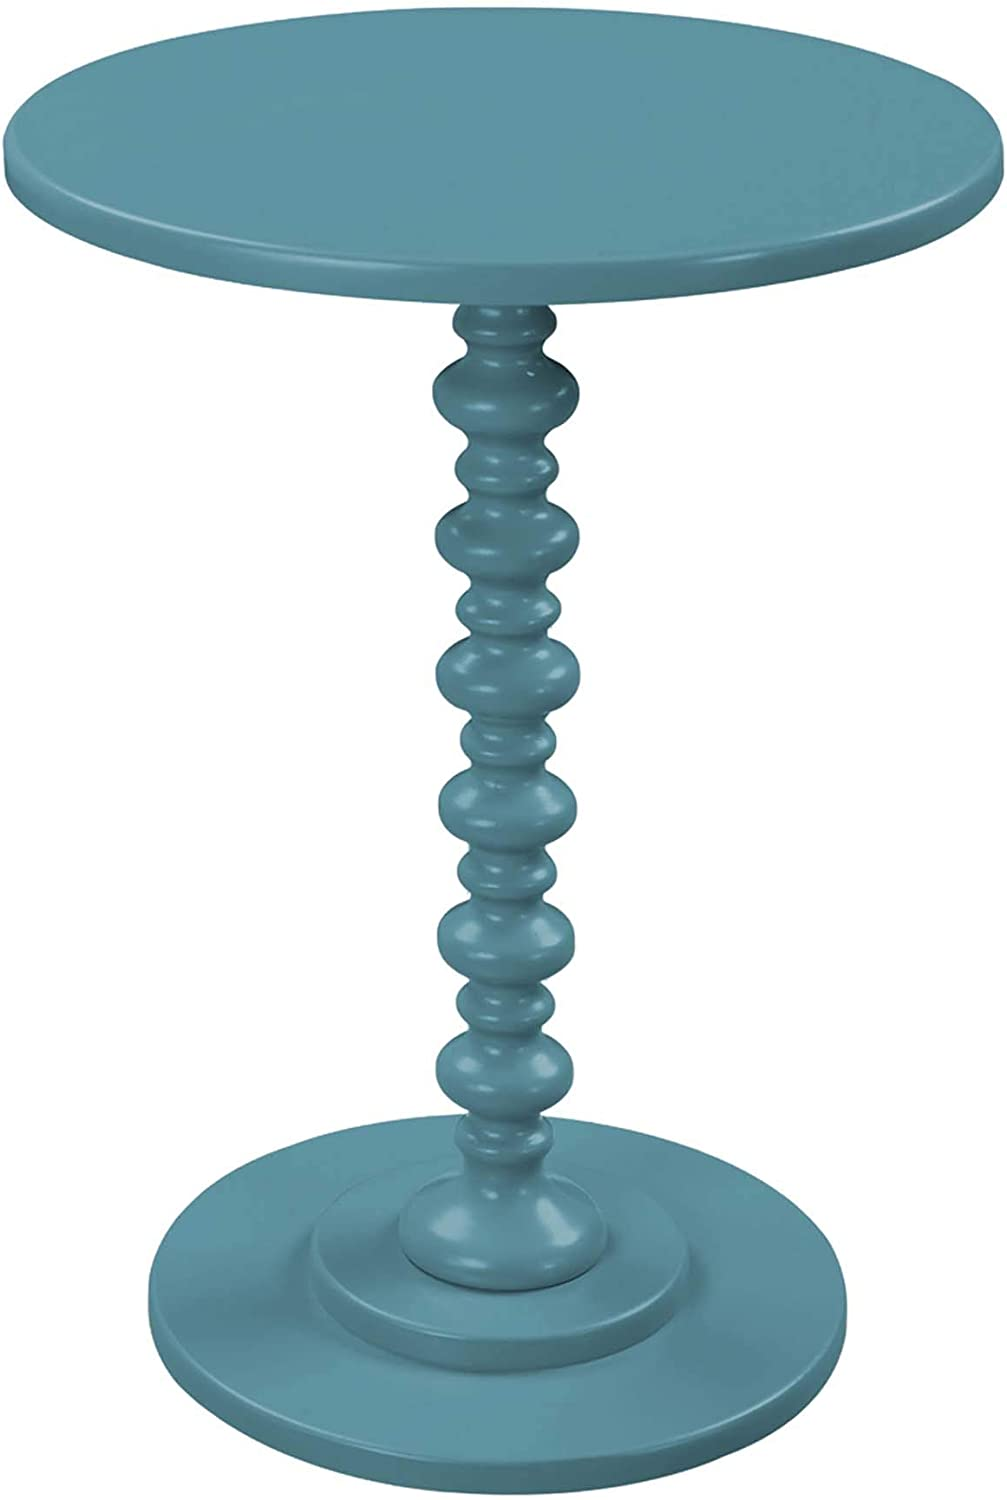 Convenience Concepts Palm Beach Spindle Table, Teal Blue